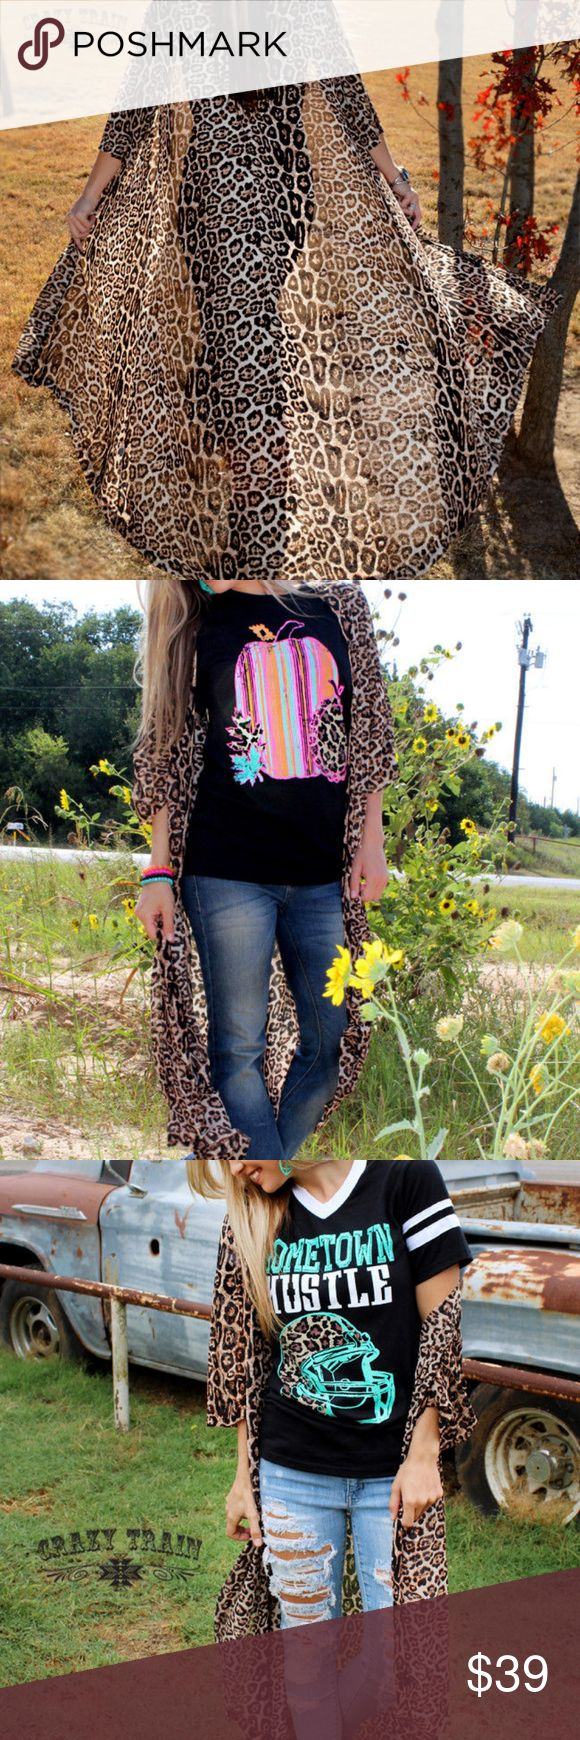 """Crazy Train Dixie Duster Cheetah Leopard Southwest Crazy Train Dixie Duster Cheetah Leopard Southwestern Boho Sizes Sm-Large  Boho, Southwestern style. Sheer, however heavier fabric. Long Southwestern boho style.  Please pay close attention to measurements rather than size. Sizing may not be """"typical"""" of standard sizing. Laid flat-Chest (armpit to armpit) Chest 17"""", Sleeves 18"""", Length 42"""" Crazy Train Tops"""